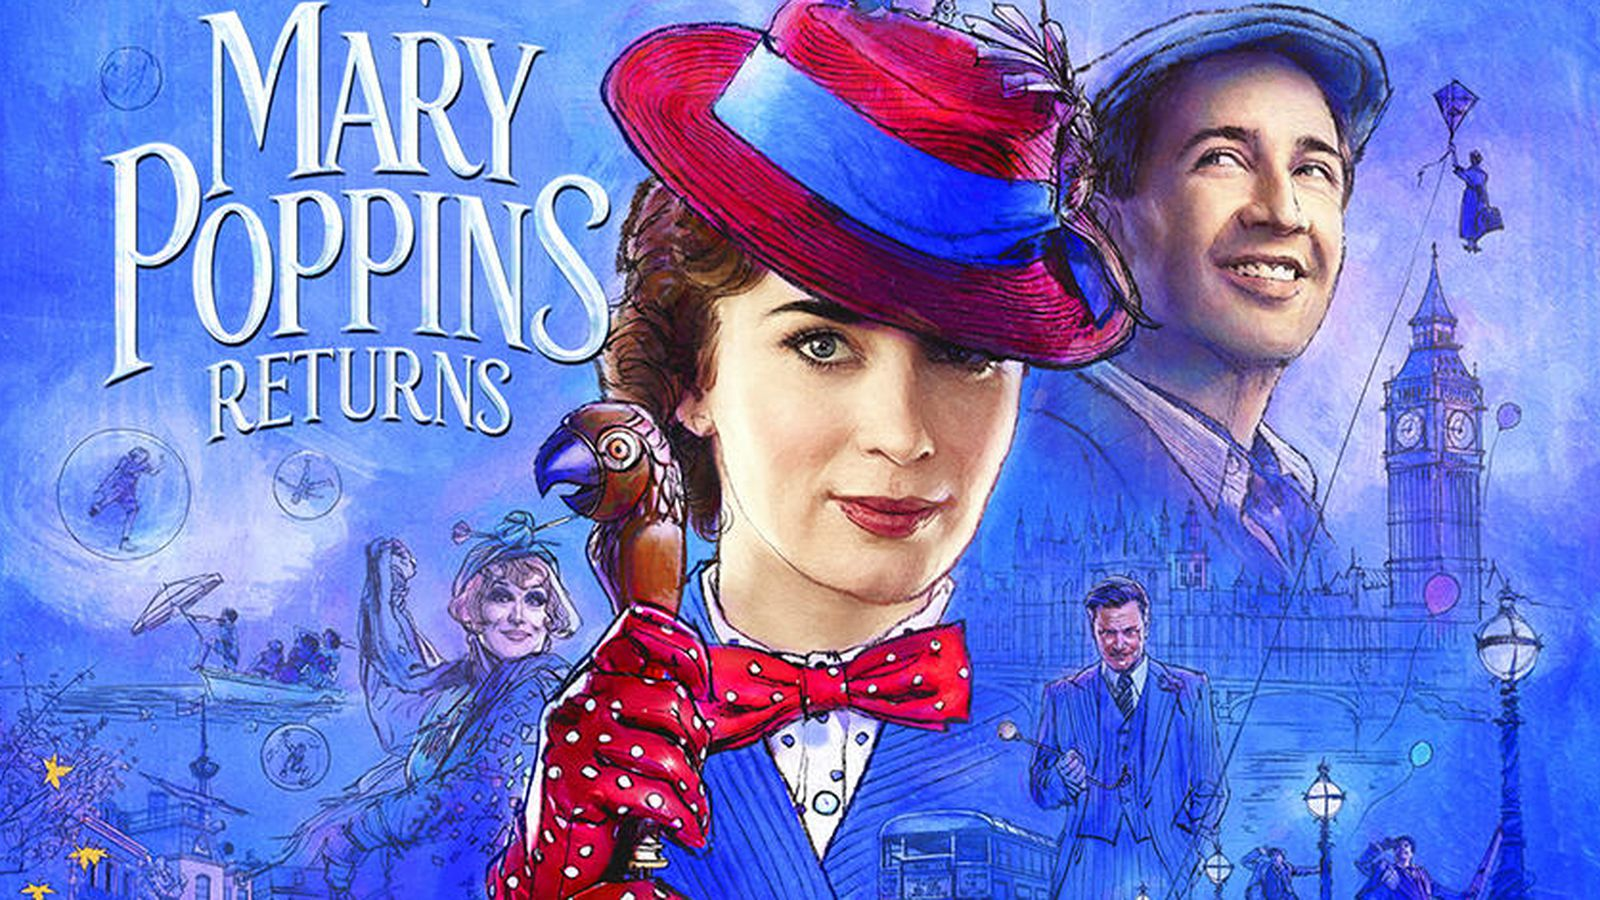 Download Mary Poppins Returns Full Movie in 480p/720p/1080p